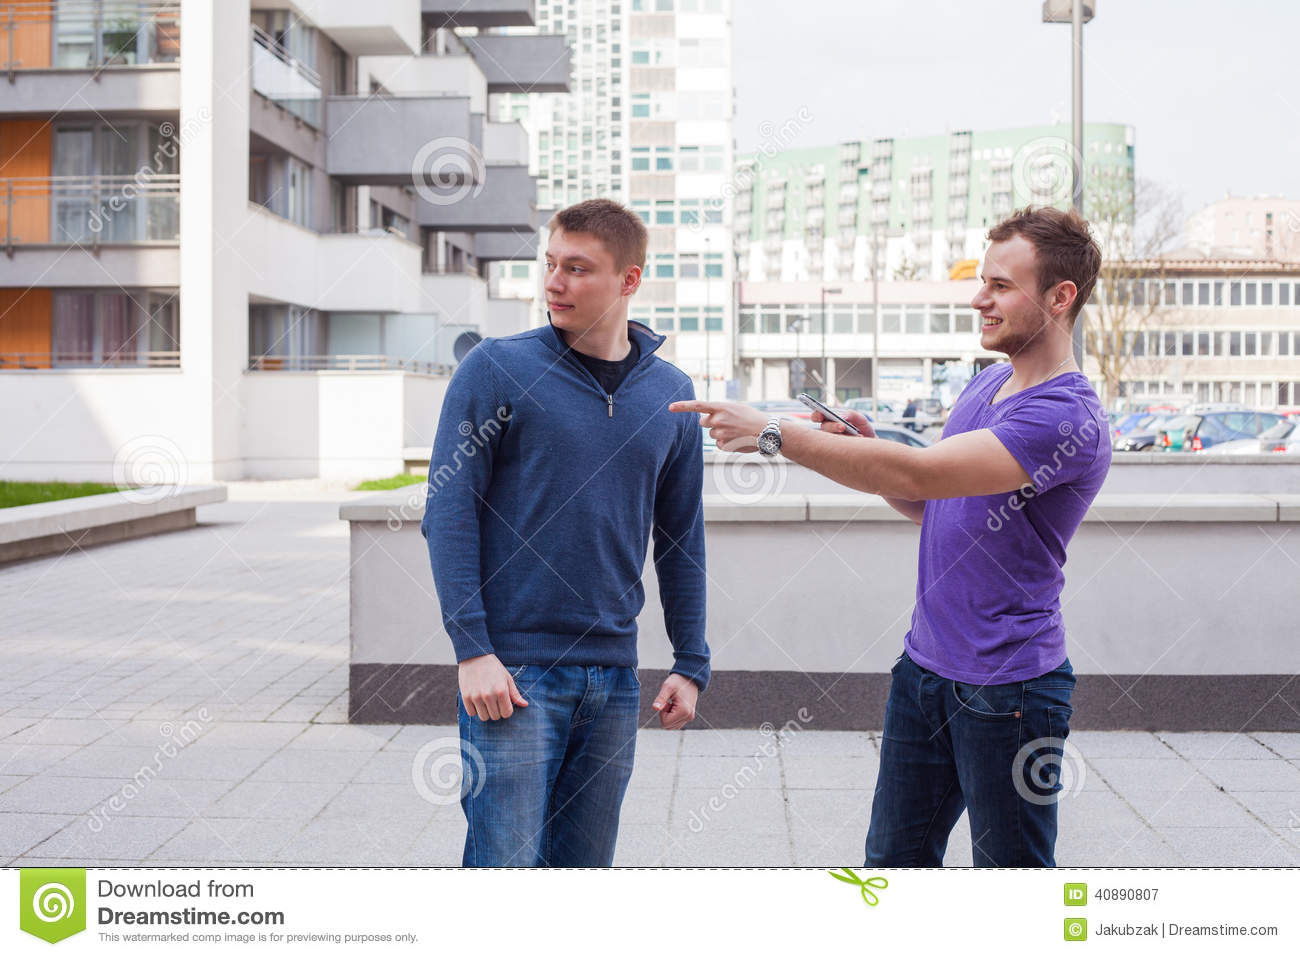 Male Tourist Asks For Directions From Man With Mobile